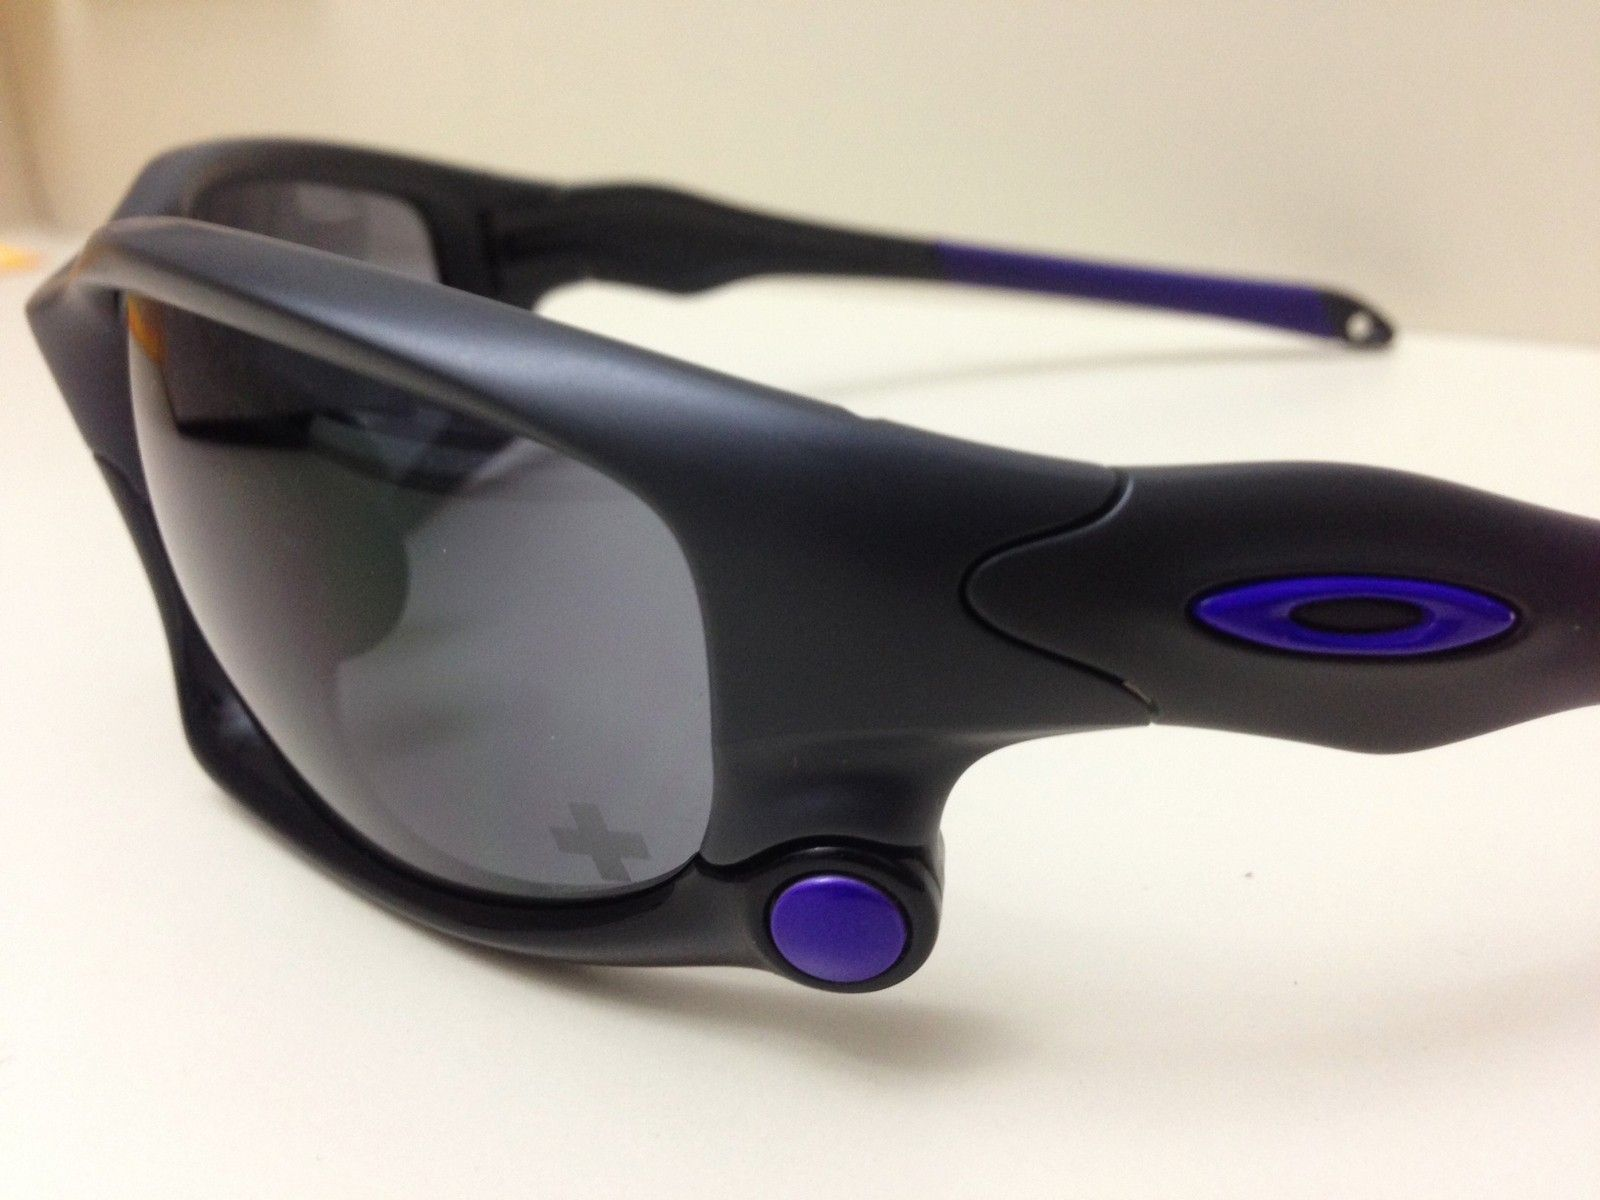 NEW OAKLEY INFINITE HERO SPLIT JACKET *REDUCED PRICE* - IMG_5662.JPG